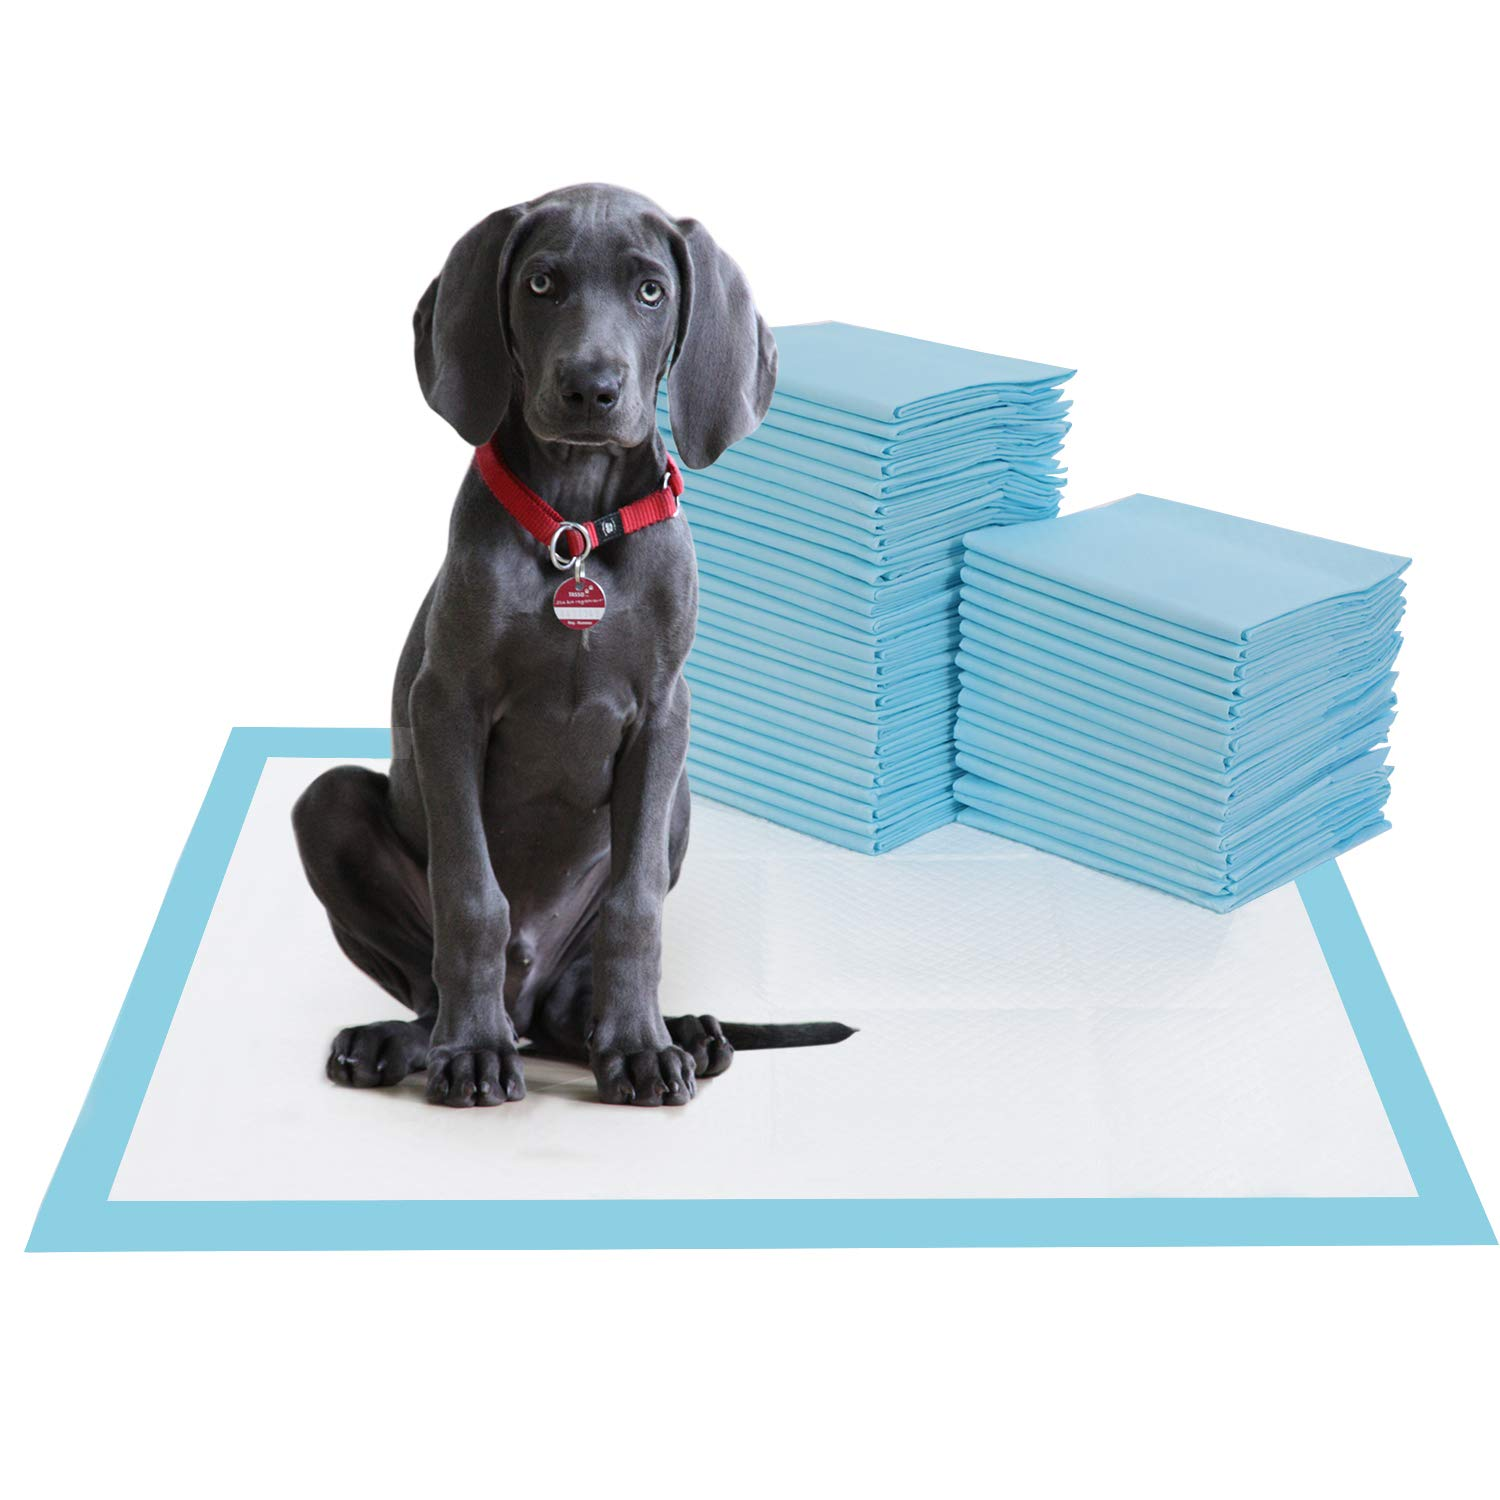 BESTLE Large Pet Training and Puppy Pads Pee Pad for Dogs 24''x24''-80 Count Super Absorbent & Leak-Free